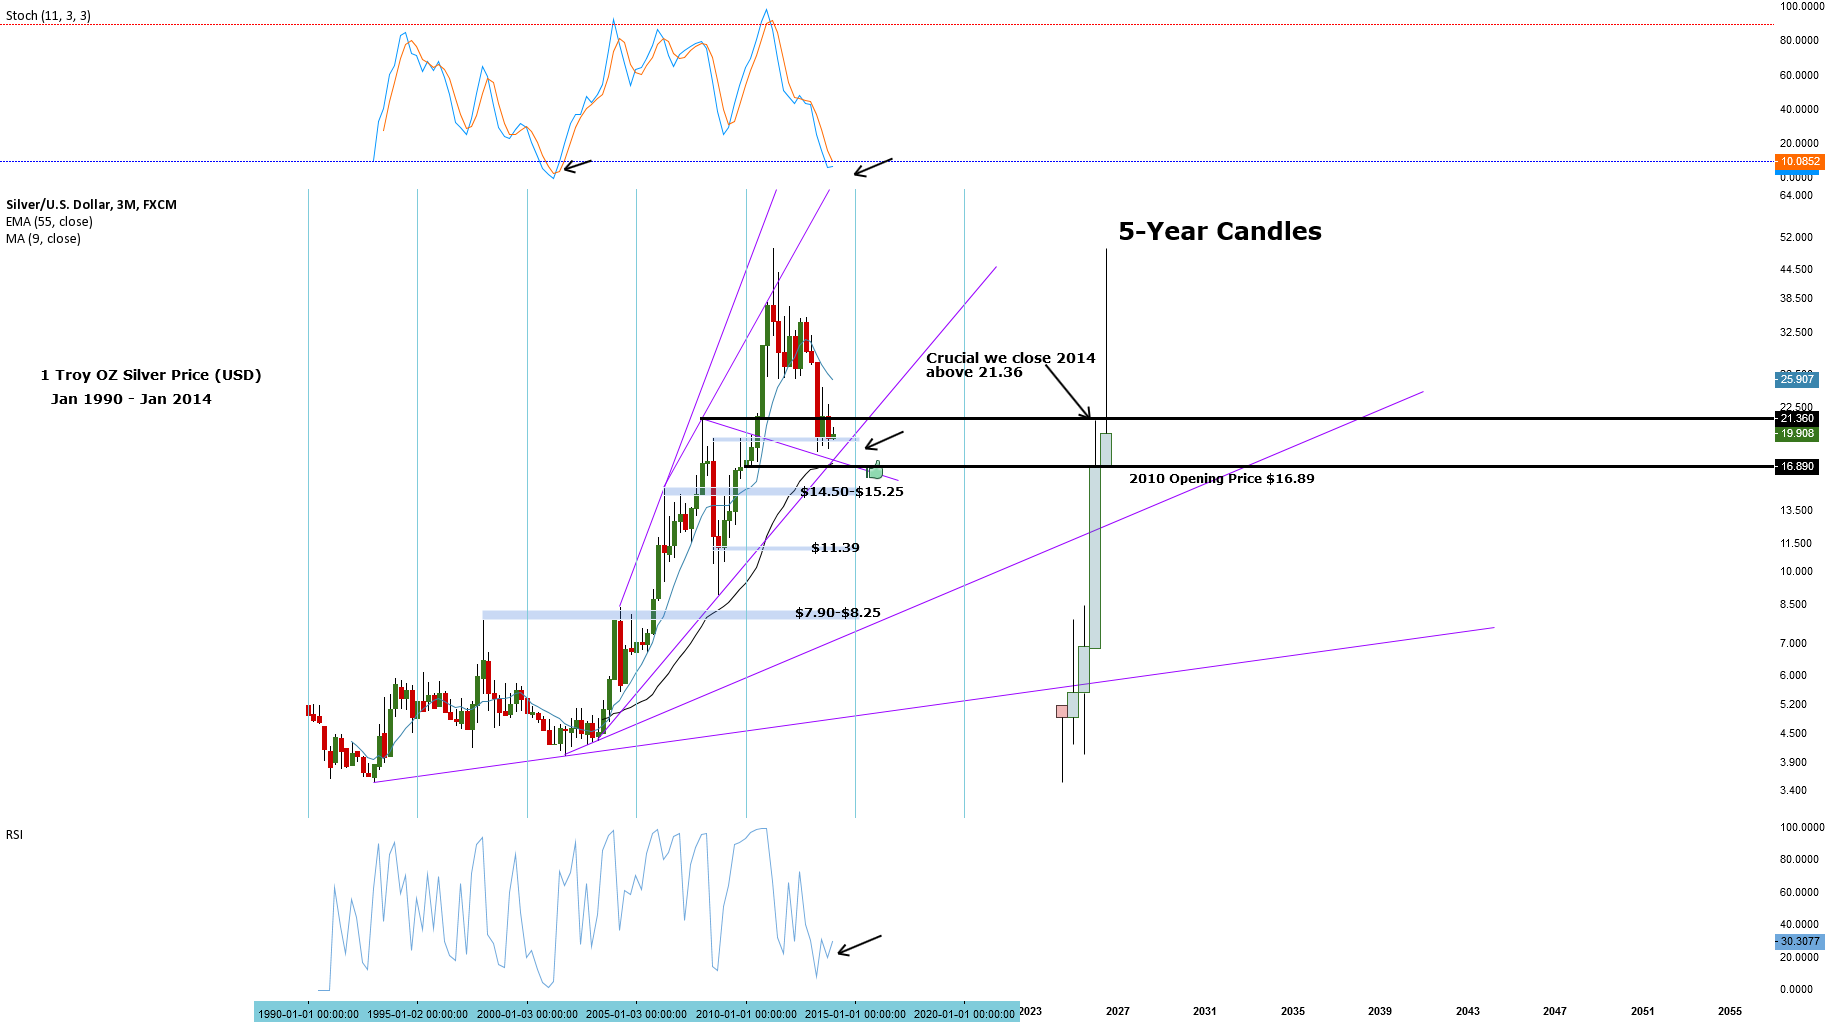 Silver 3month and 5-year candlesticks